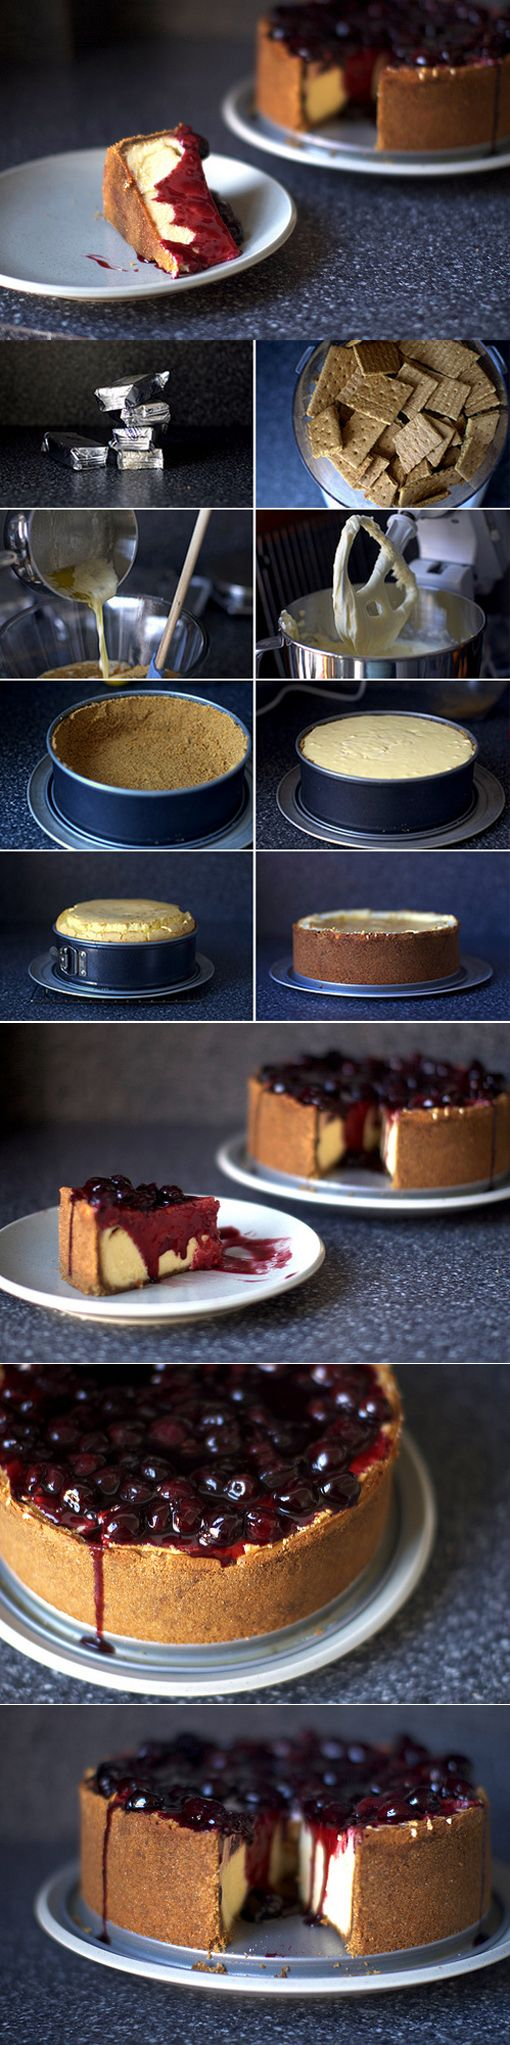 New York Cheesecake / http://smittenkitchen.com/: